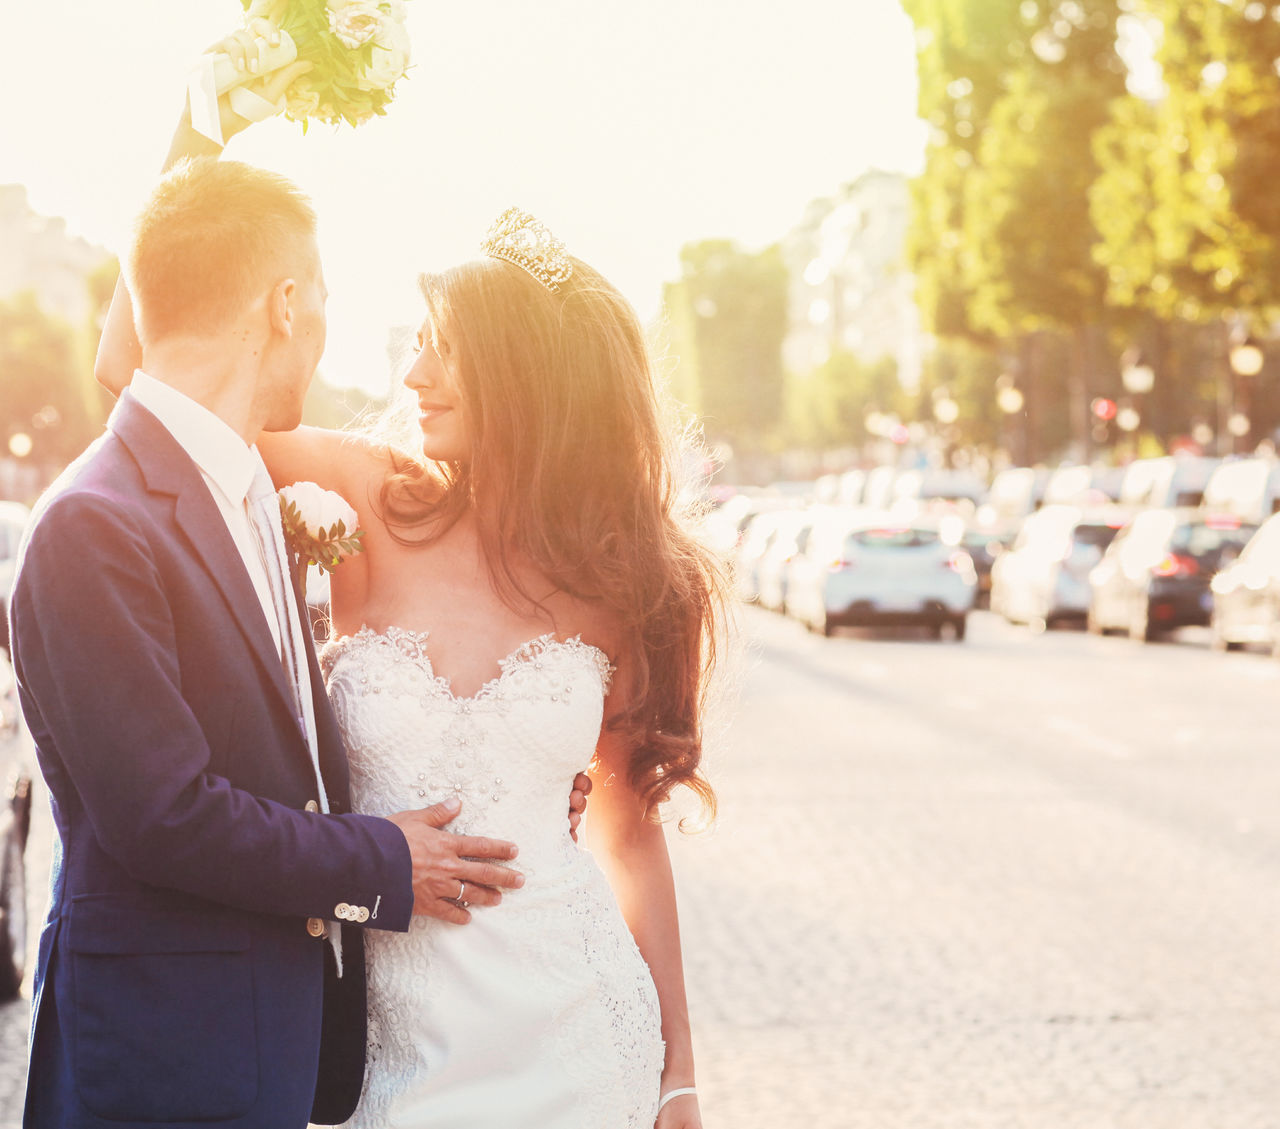 Bride Bride And Groom Champs-Élysées  Couple Embracing France French Groom Just Married Love Love Lovers Outdoors Paris Street Summer Sunlight Sunset Tender Tiara Two People Walking Wedding Wedding Day Wedding Photography